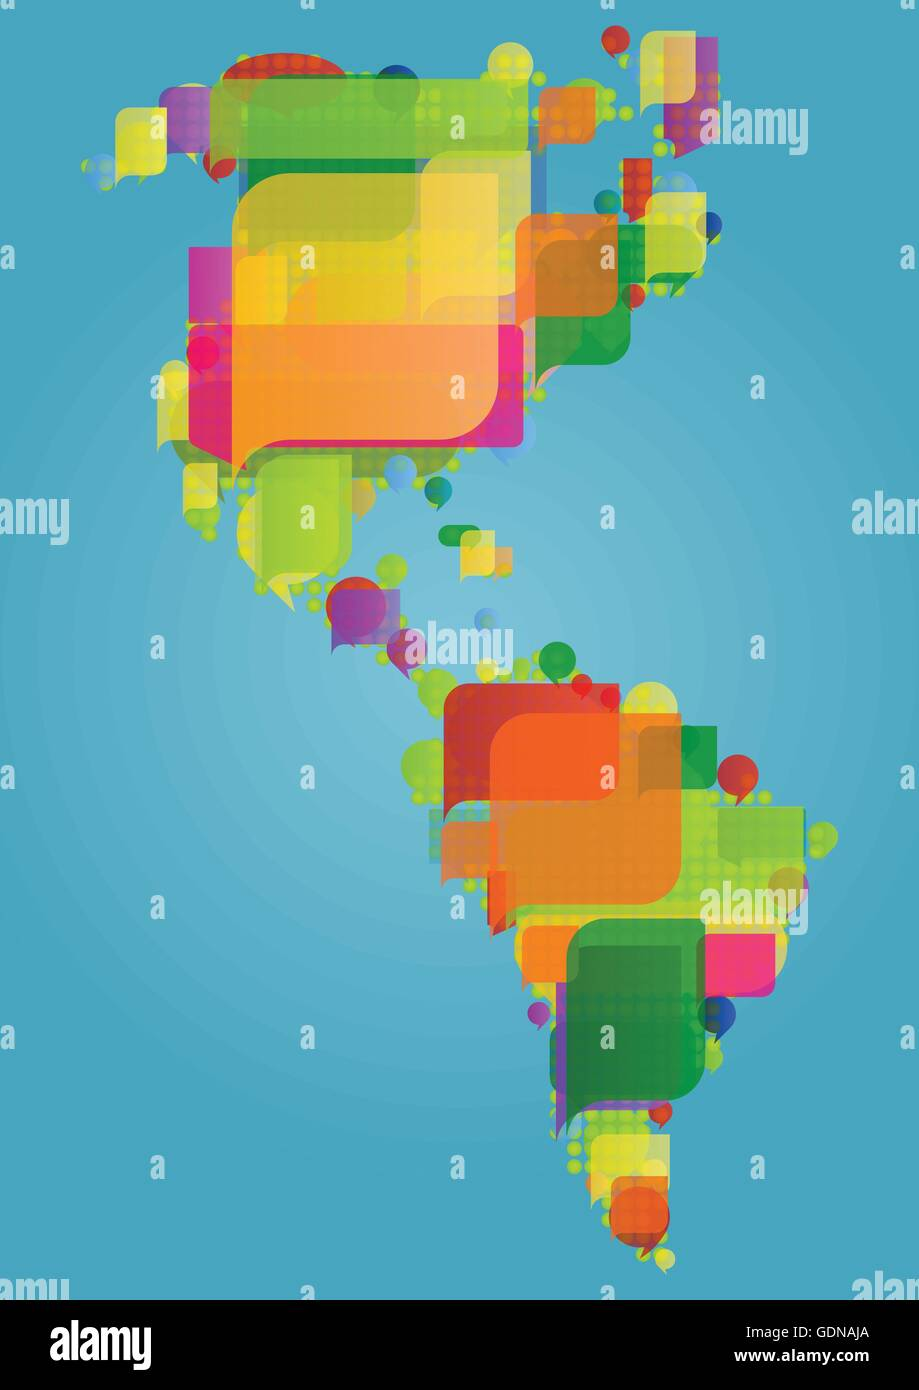 North, south and central America continent world map made of ...